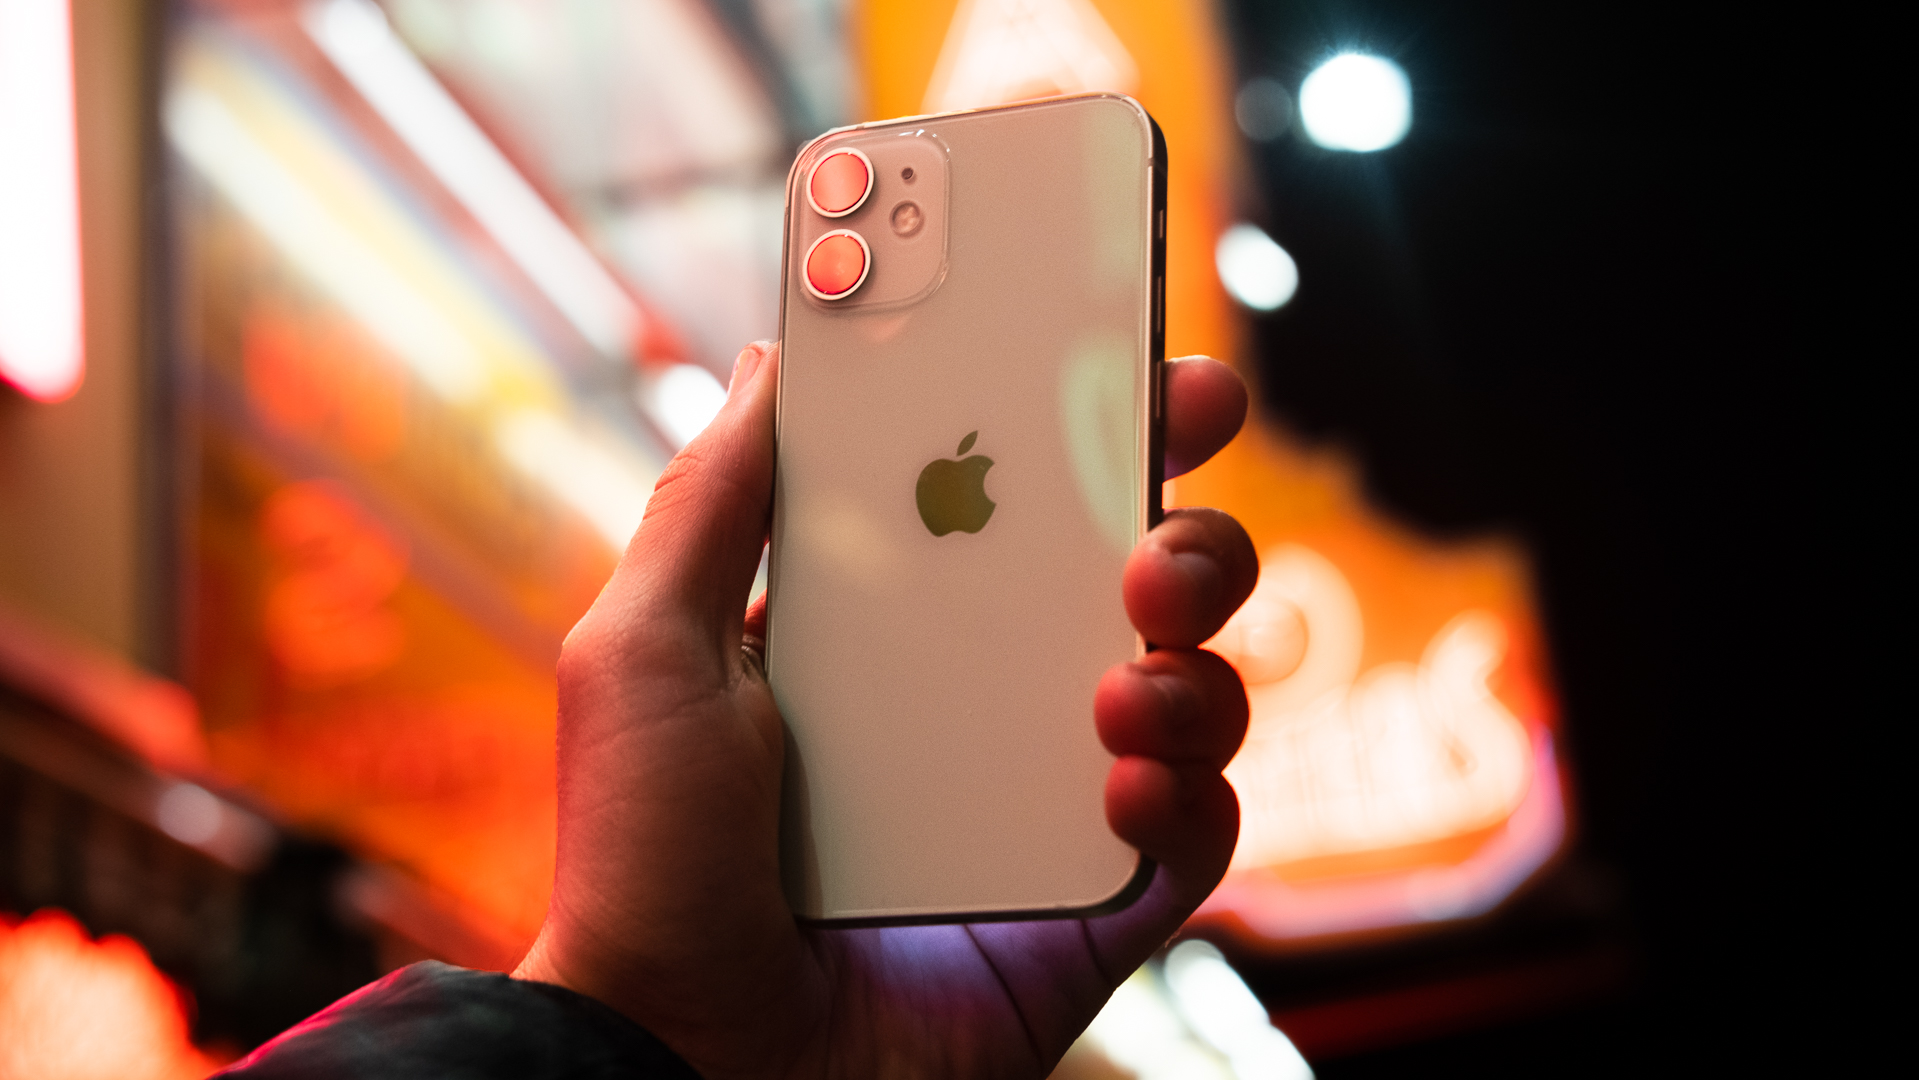 LG might sell iPhones in its stores after quitting Android devices